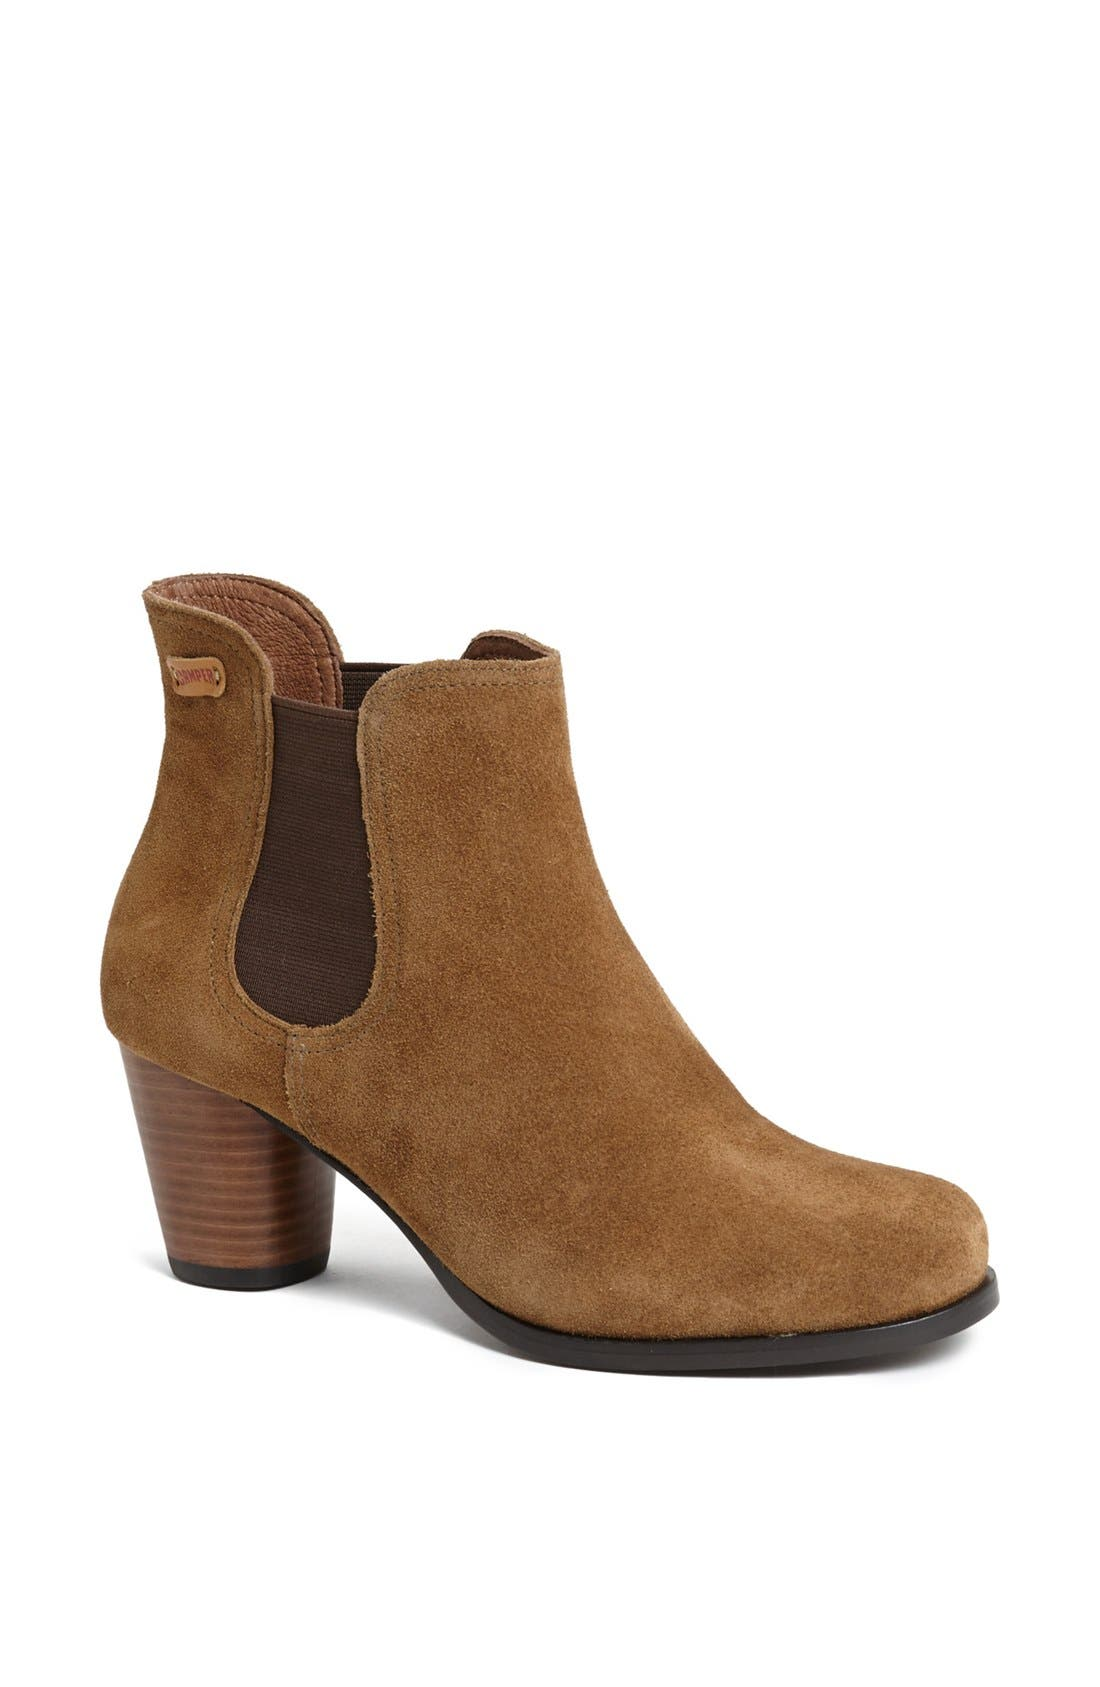 Alternate Image 1 Selected - Camper 'Annie' Ankle Bootie